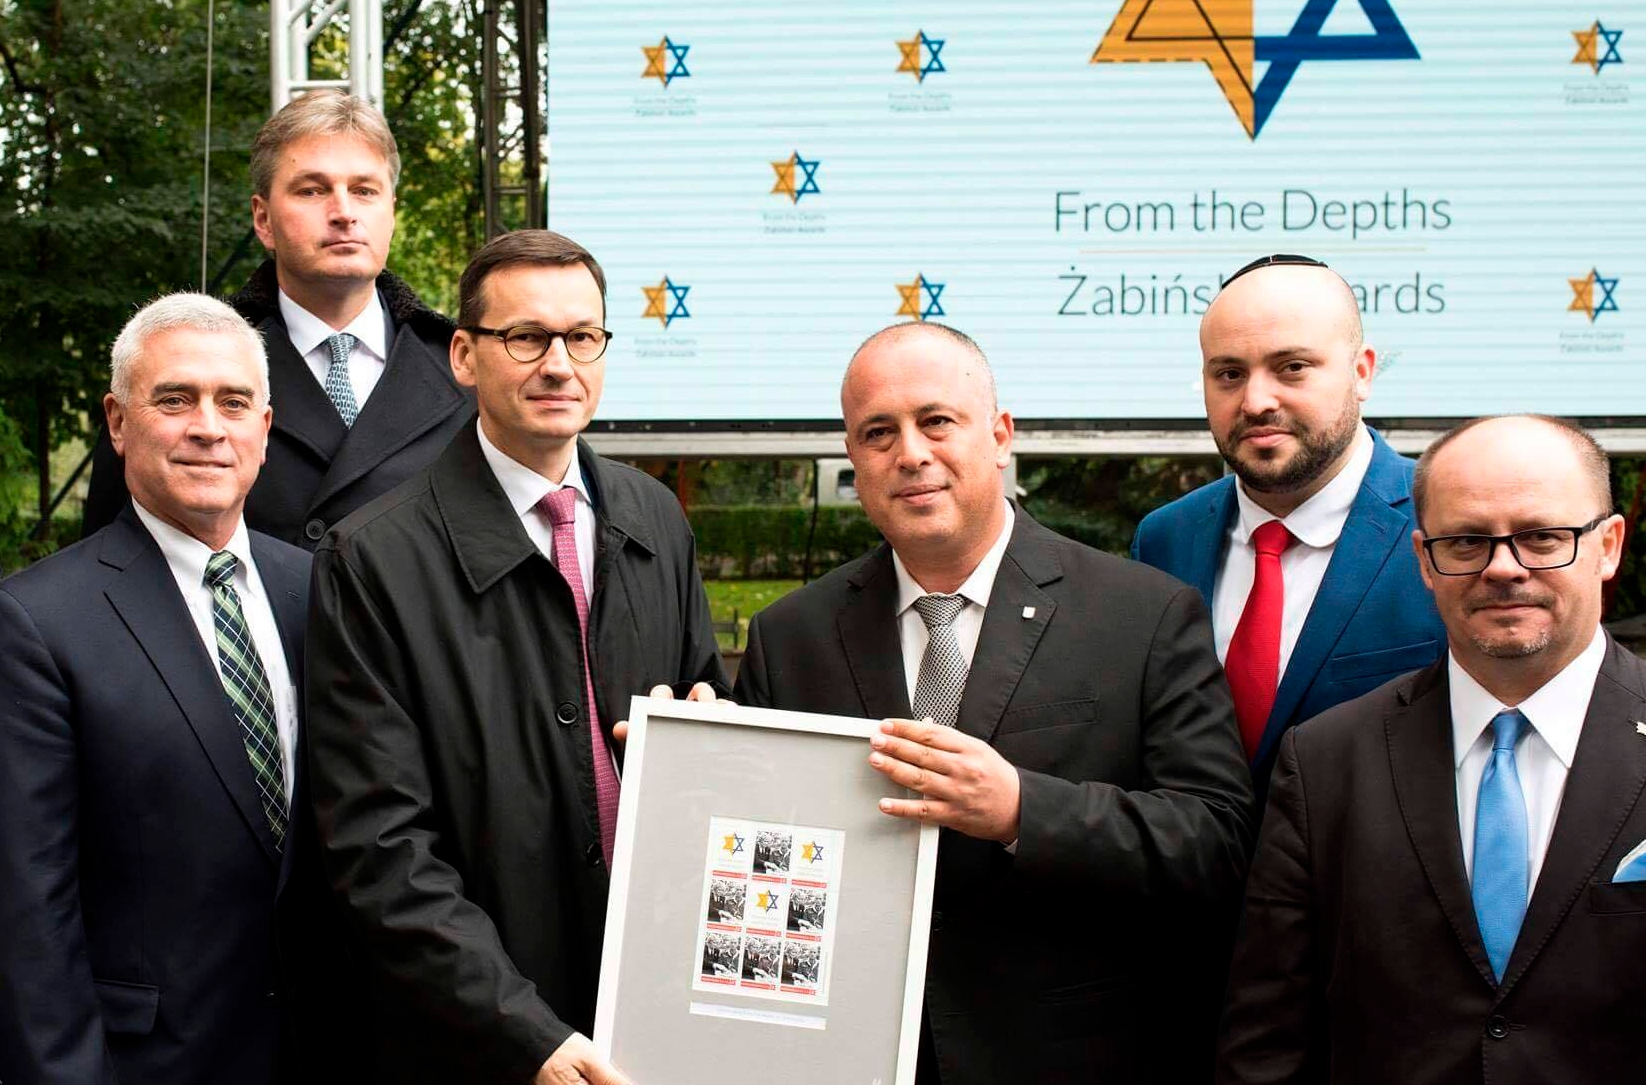 Mateusz Morawiecki 3rd from left holding a document honoring rescuers of Jews at Warsaw Zoo on Sept 18 2017 Courtesy of From the Depths